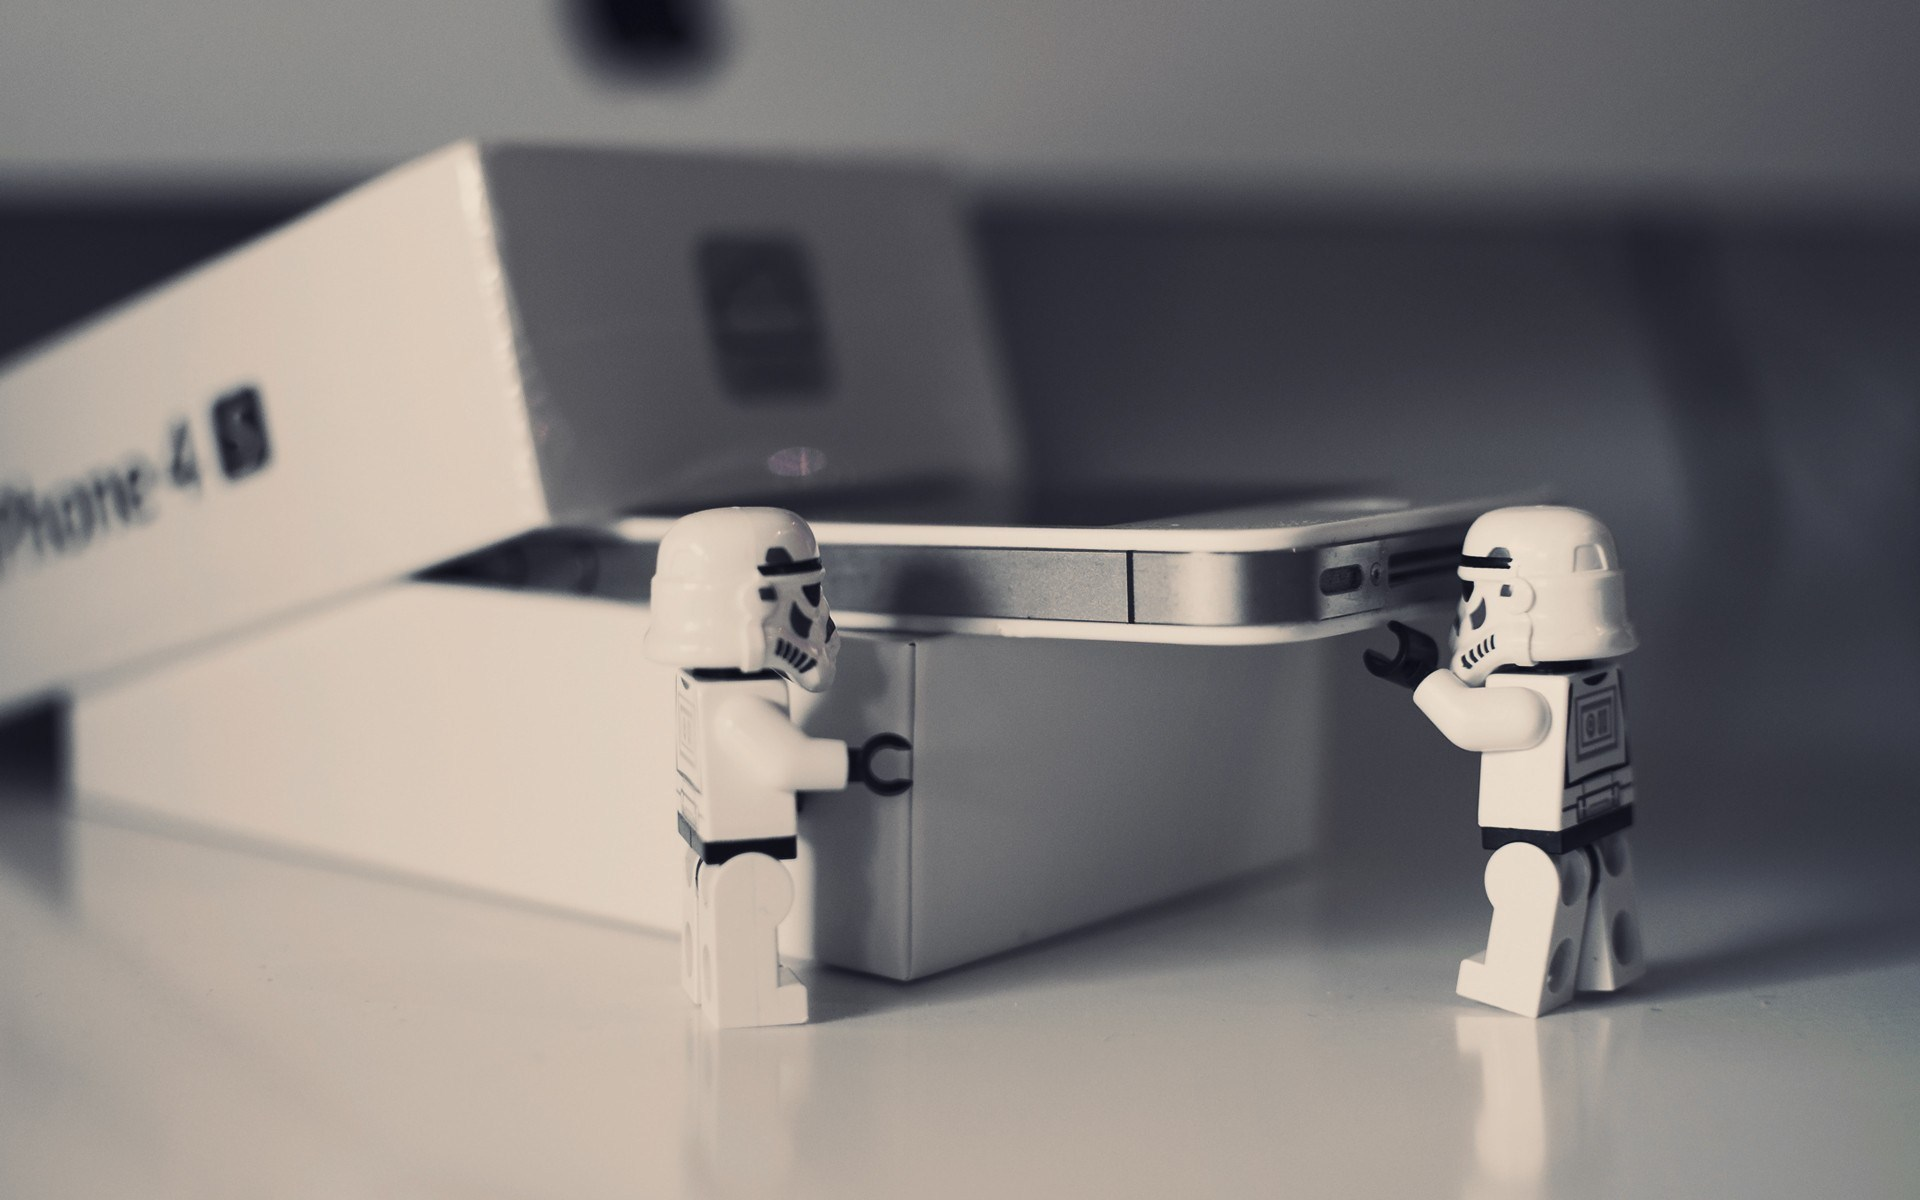 Star Wars Stormtrooper iPhone Hi-Tech Lego Photo